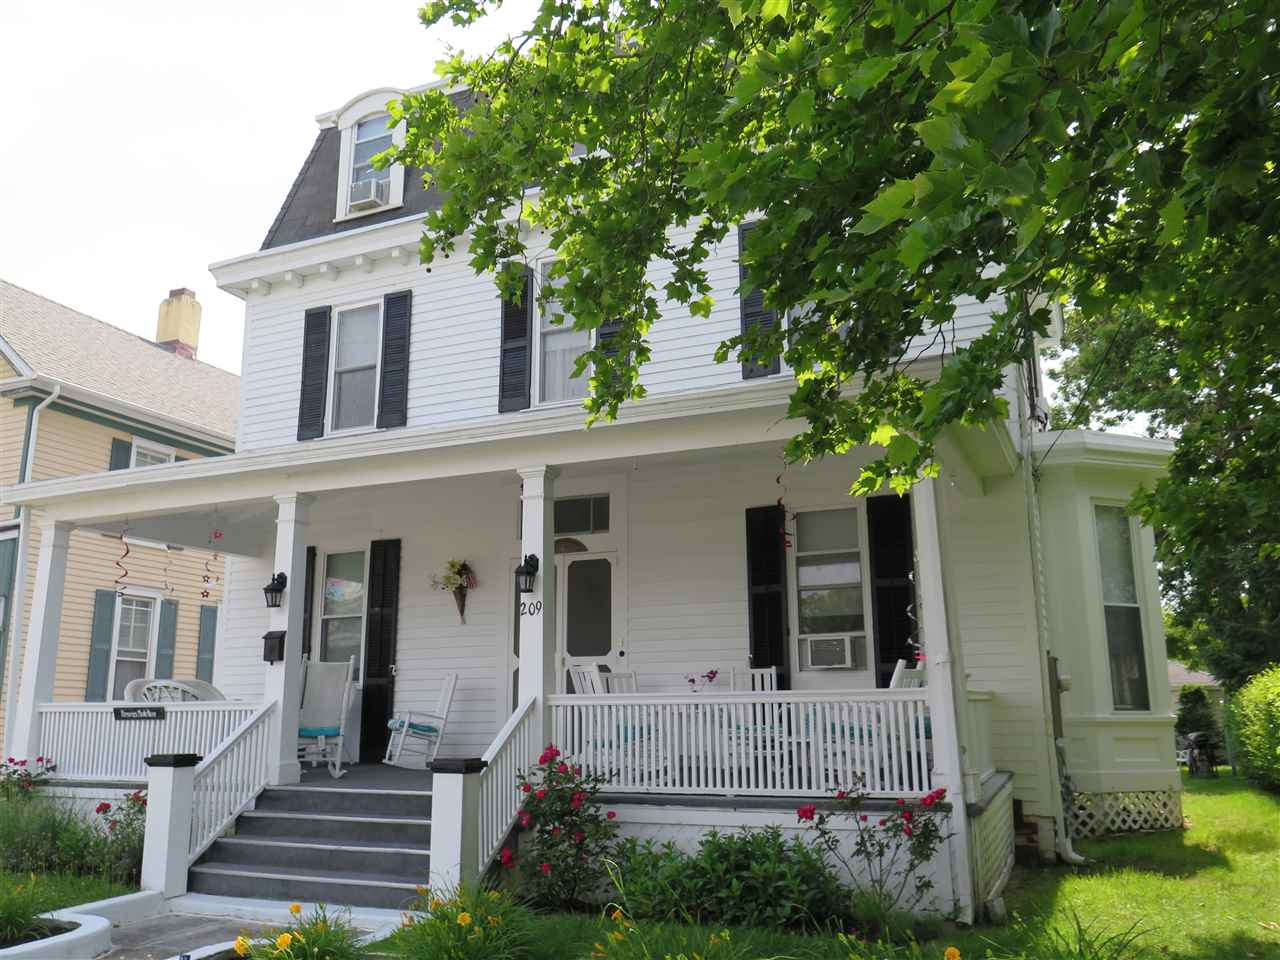 Single Family Home for Sale at 209 S Broadway Cape May, New Jersey 08204 United States